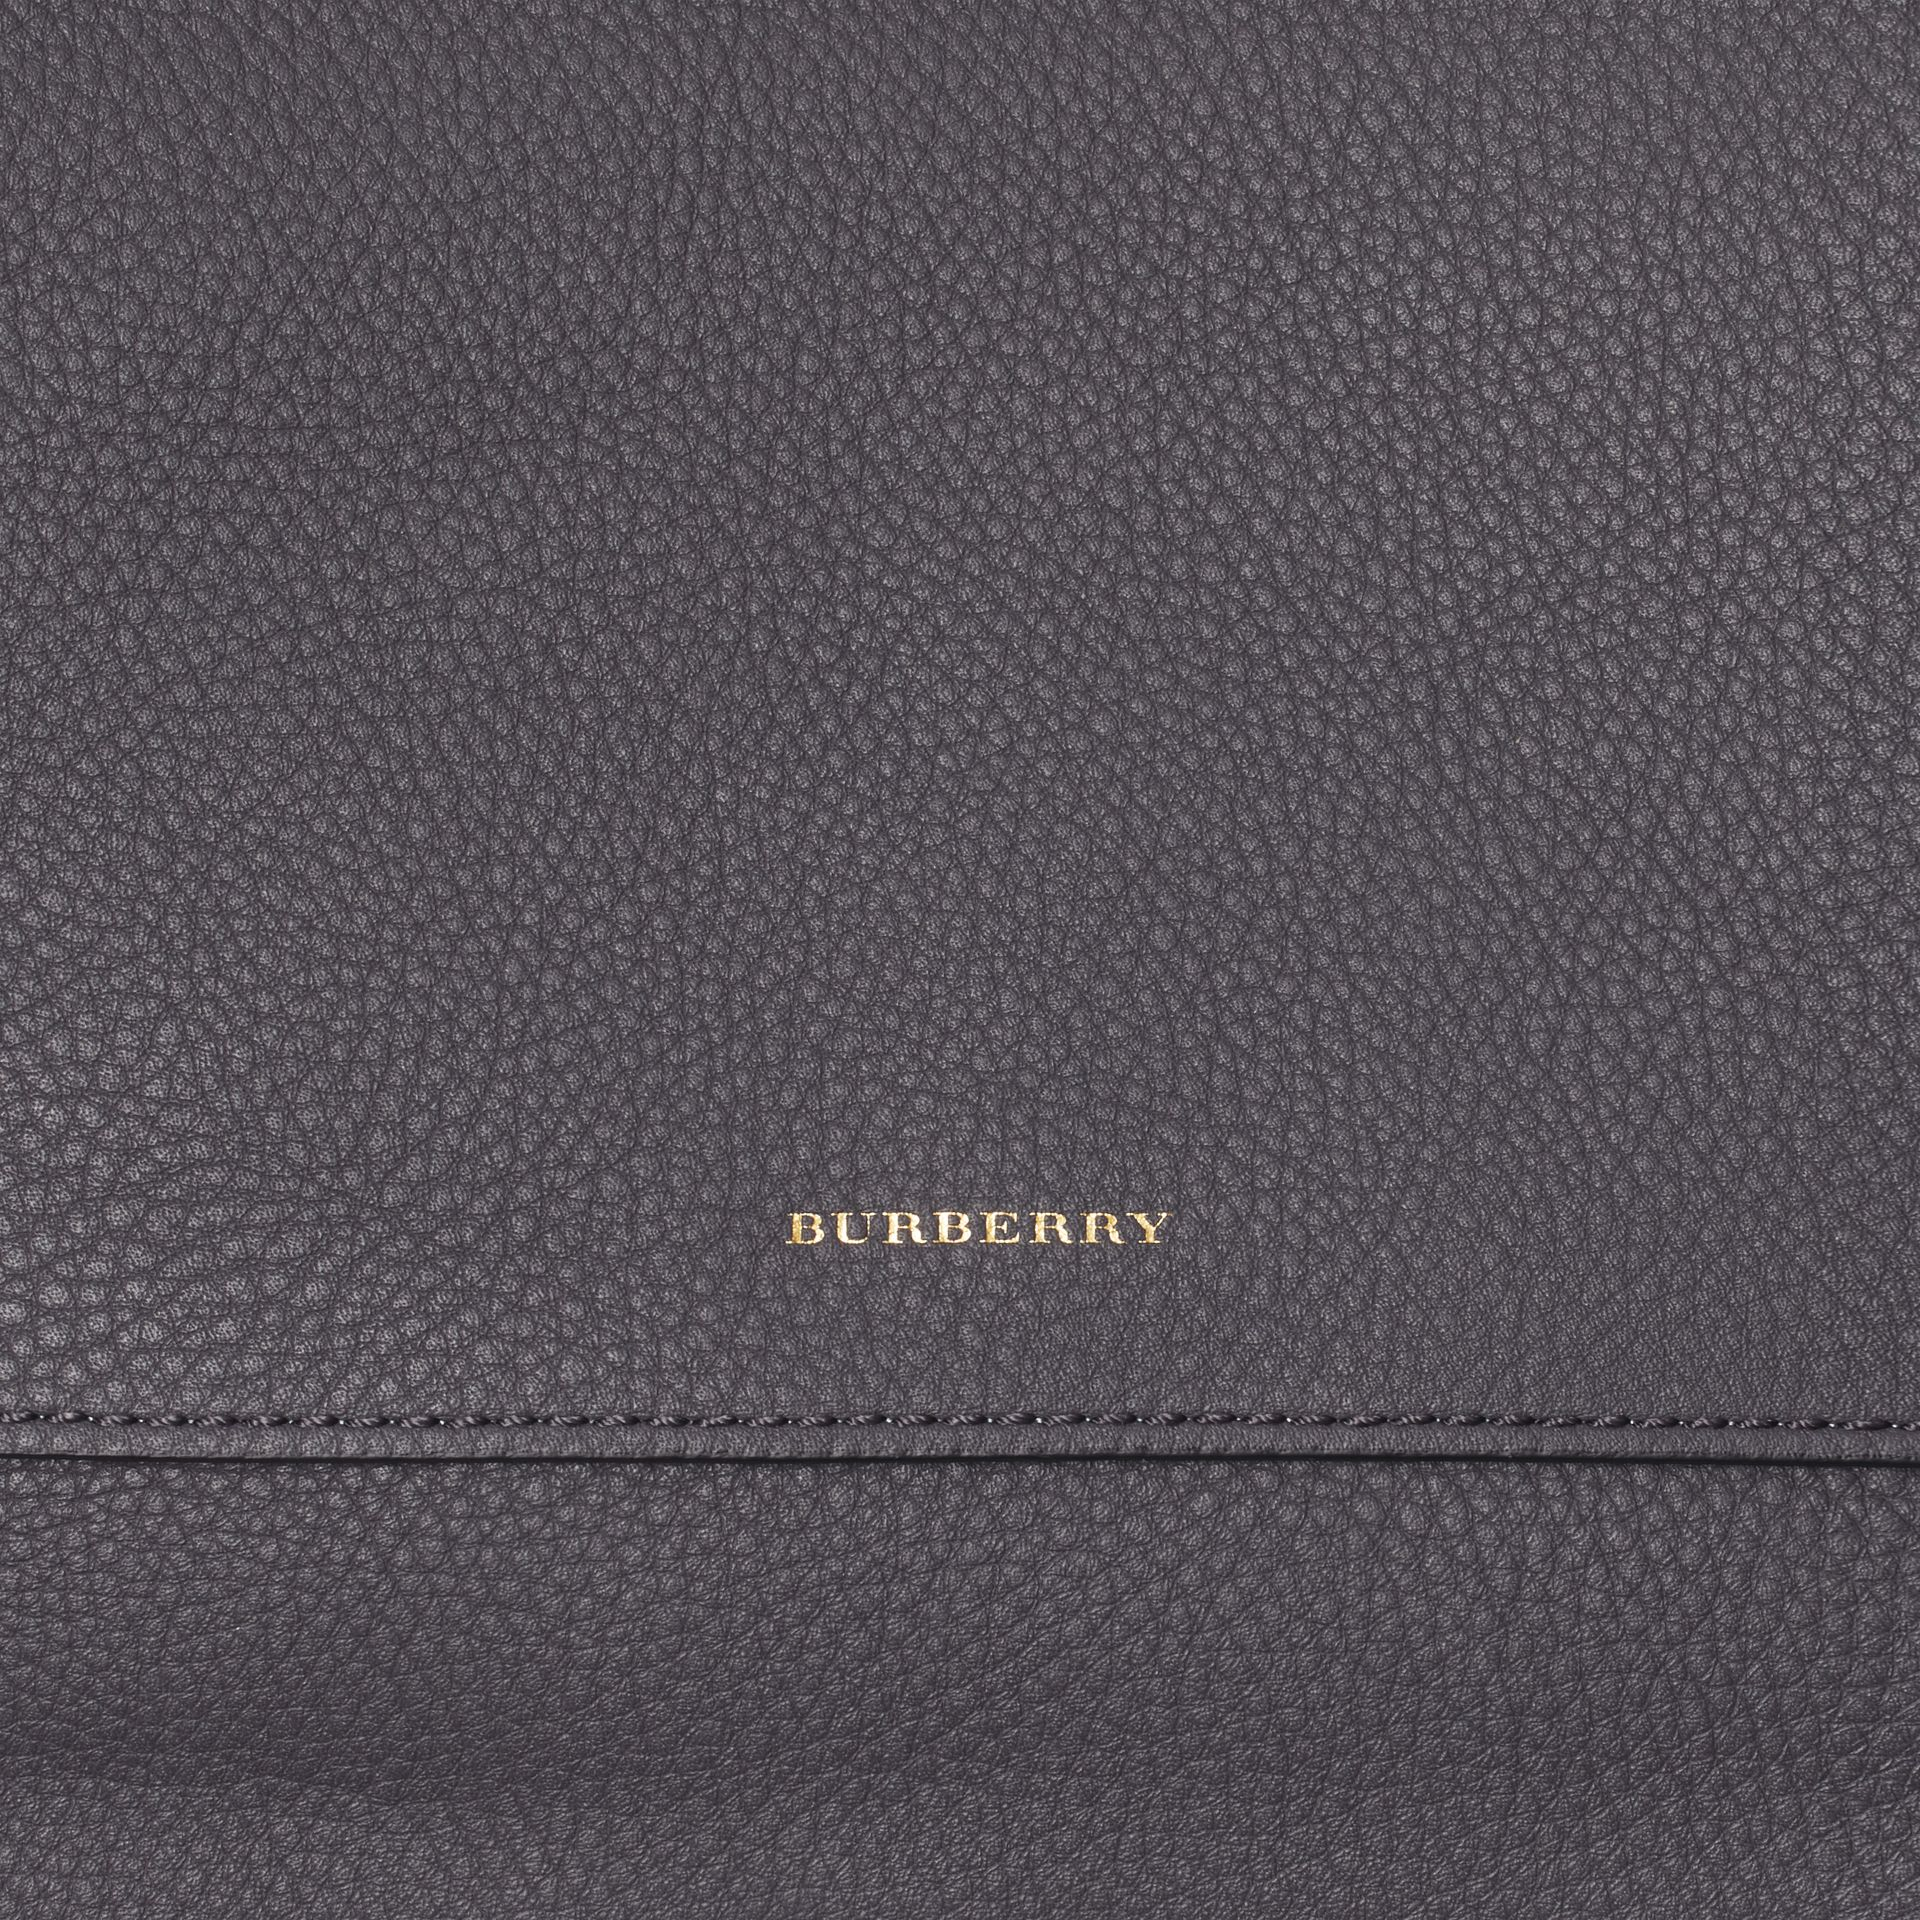 Leather Pouch with Detachable Strap in Charcoal Grey - Women | Burberry Canada - gallery image 1